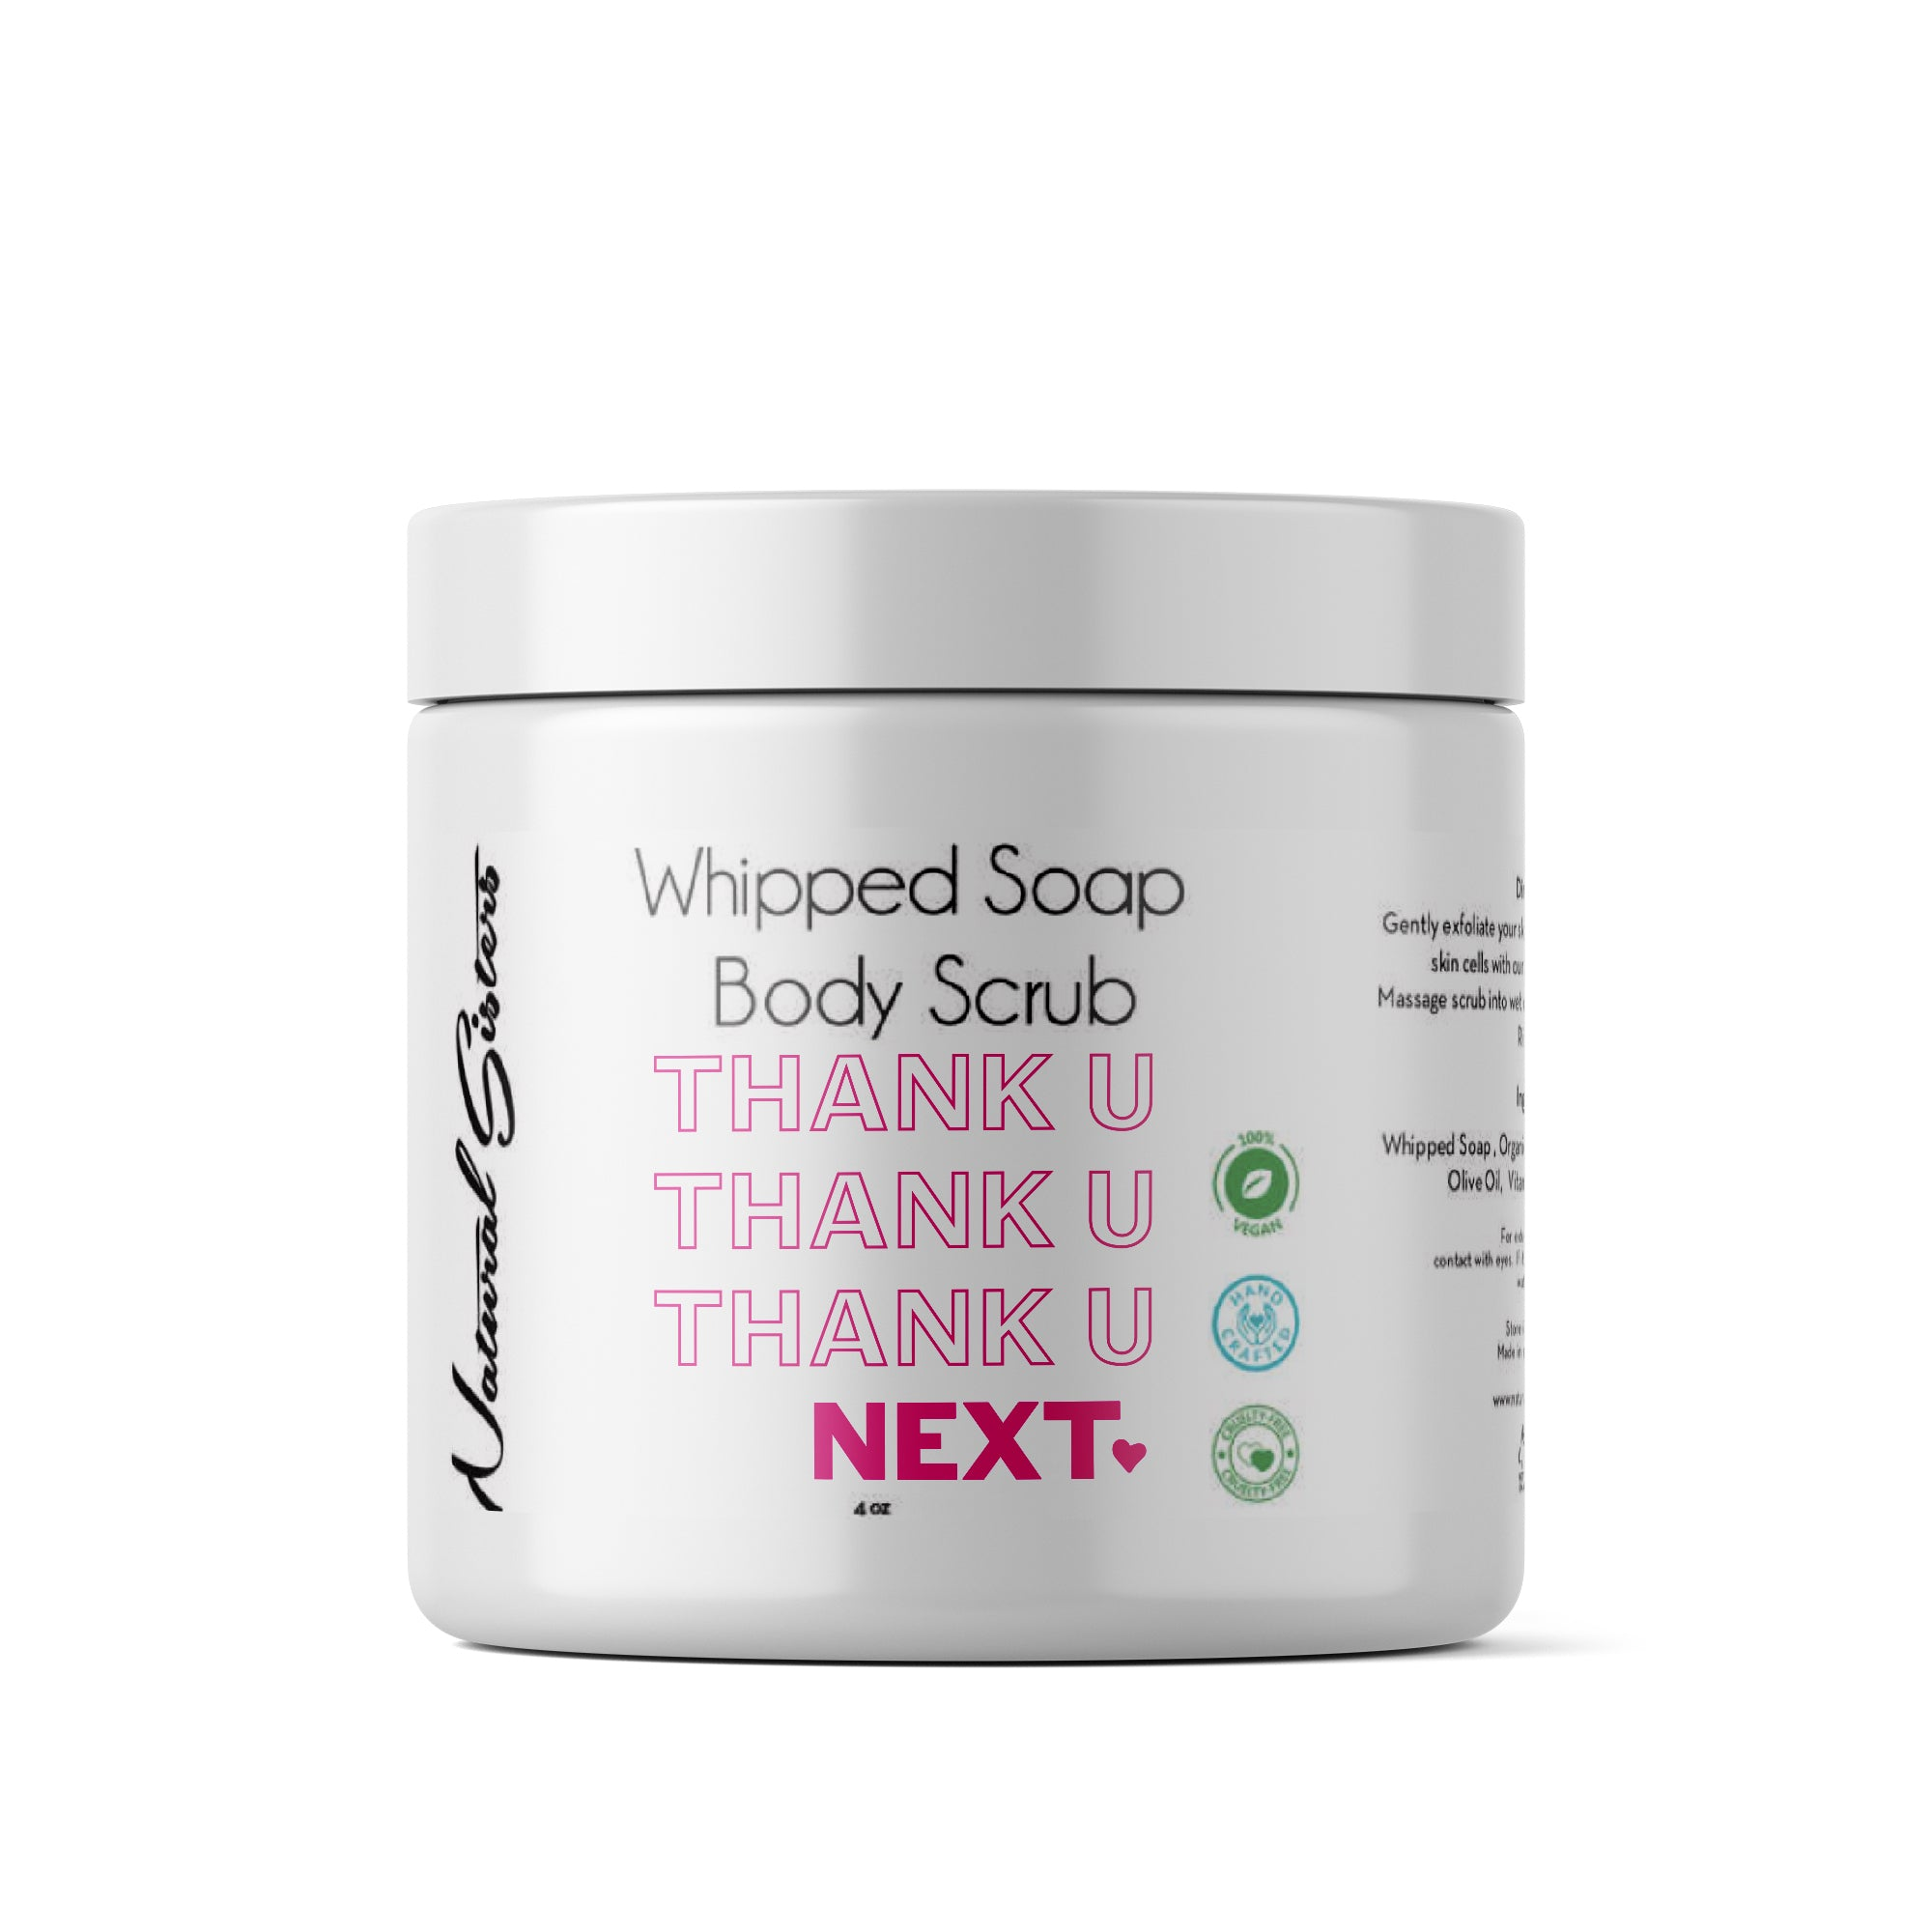 Thank You Next Body Scrub